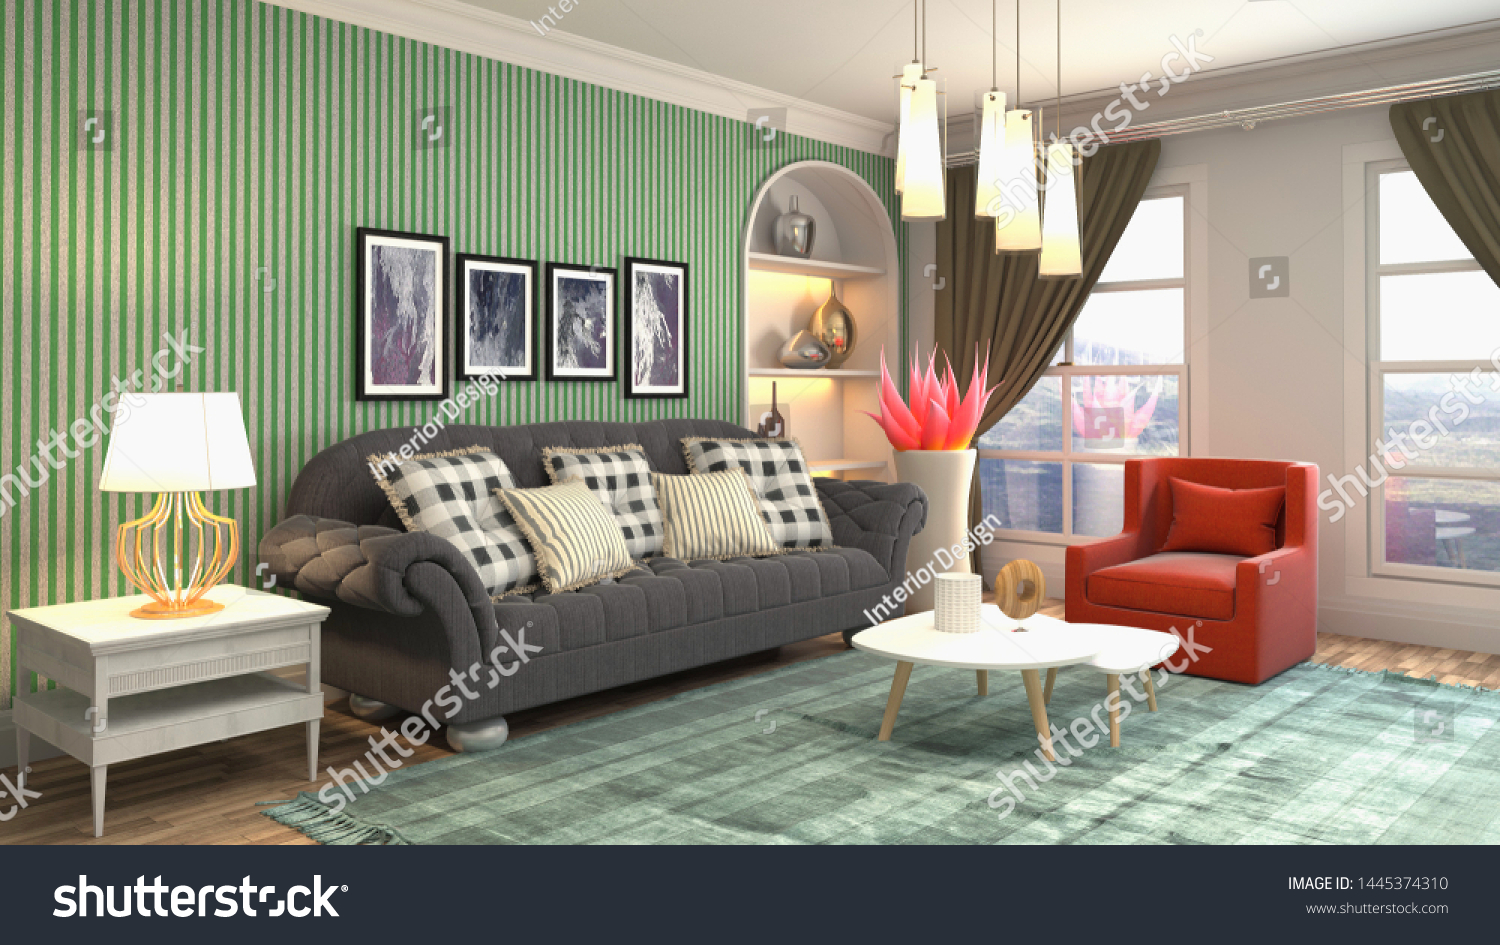 Interior of the living room. 3D illustration. #1445374310